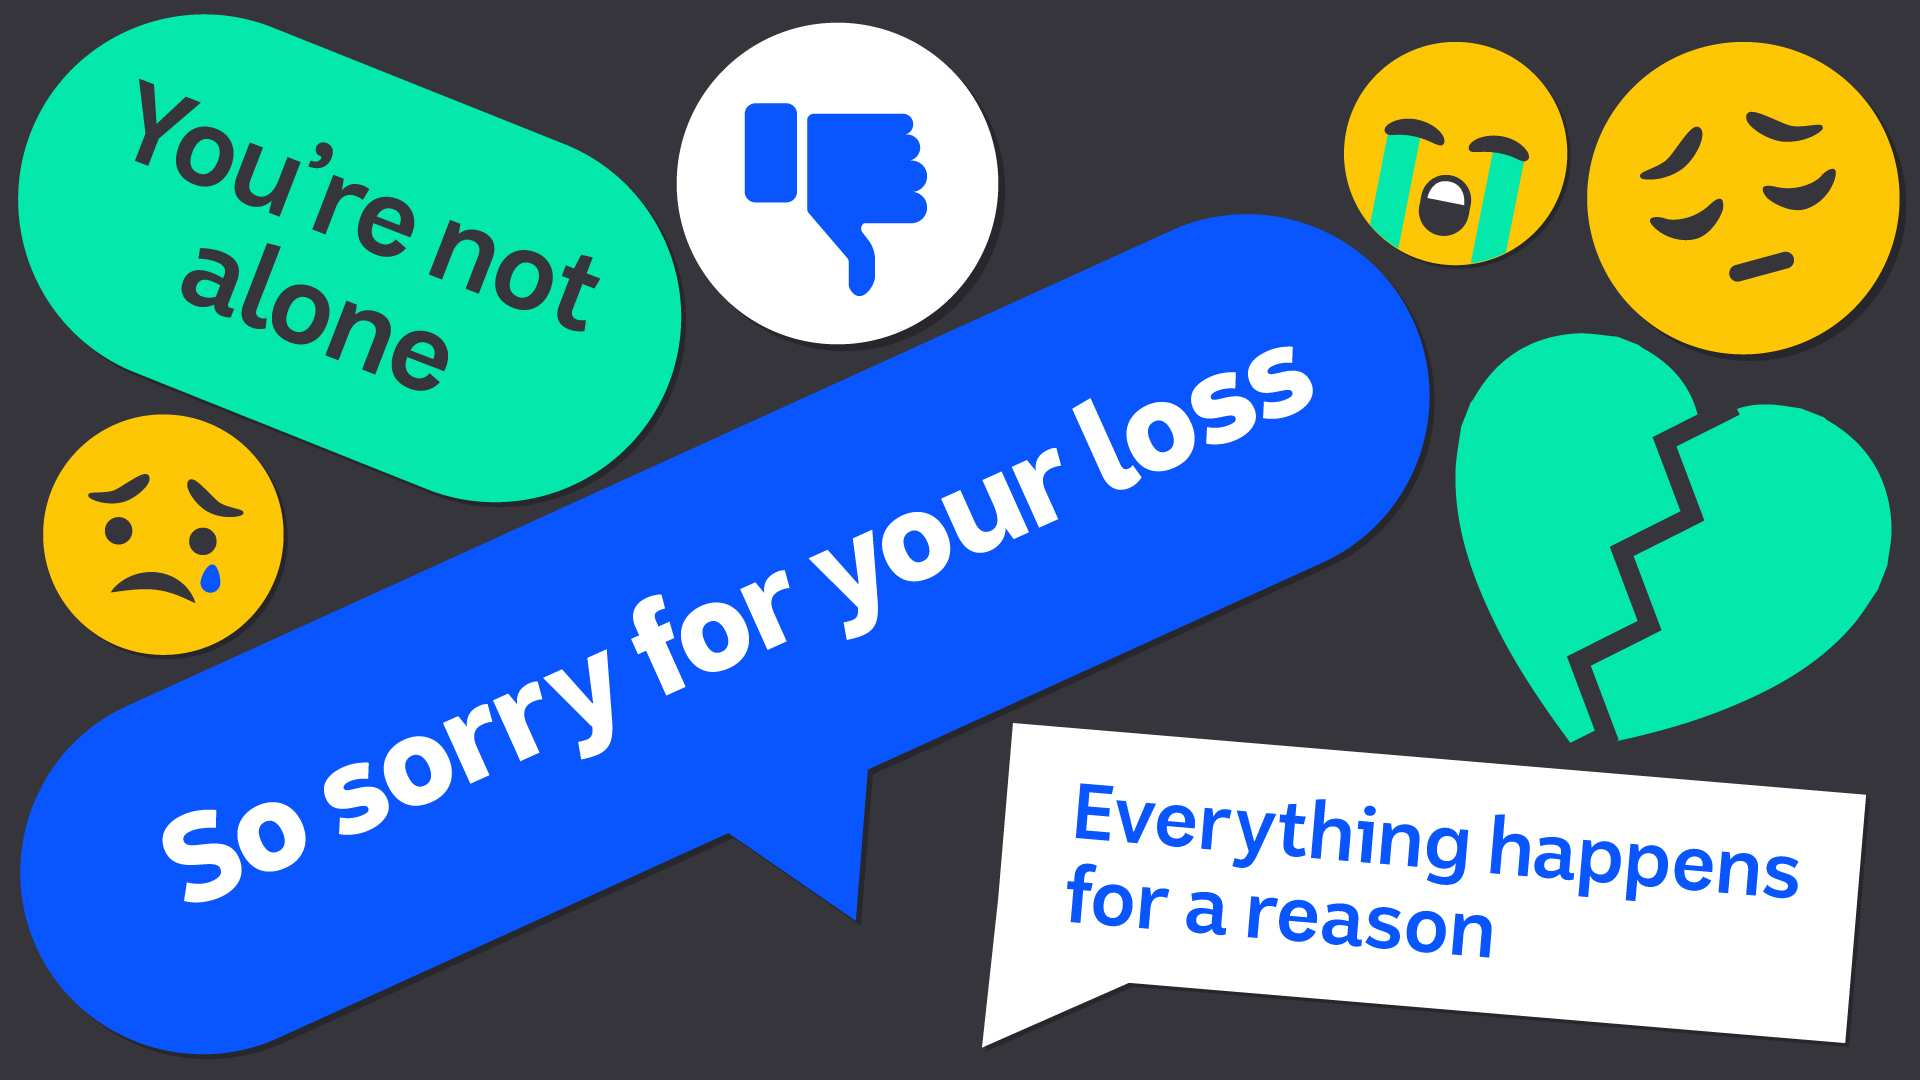 Illustration shows various social media comments and emojis for story on sharing heartbreak online